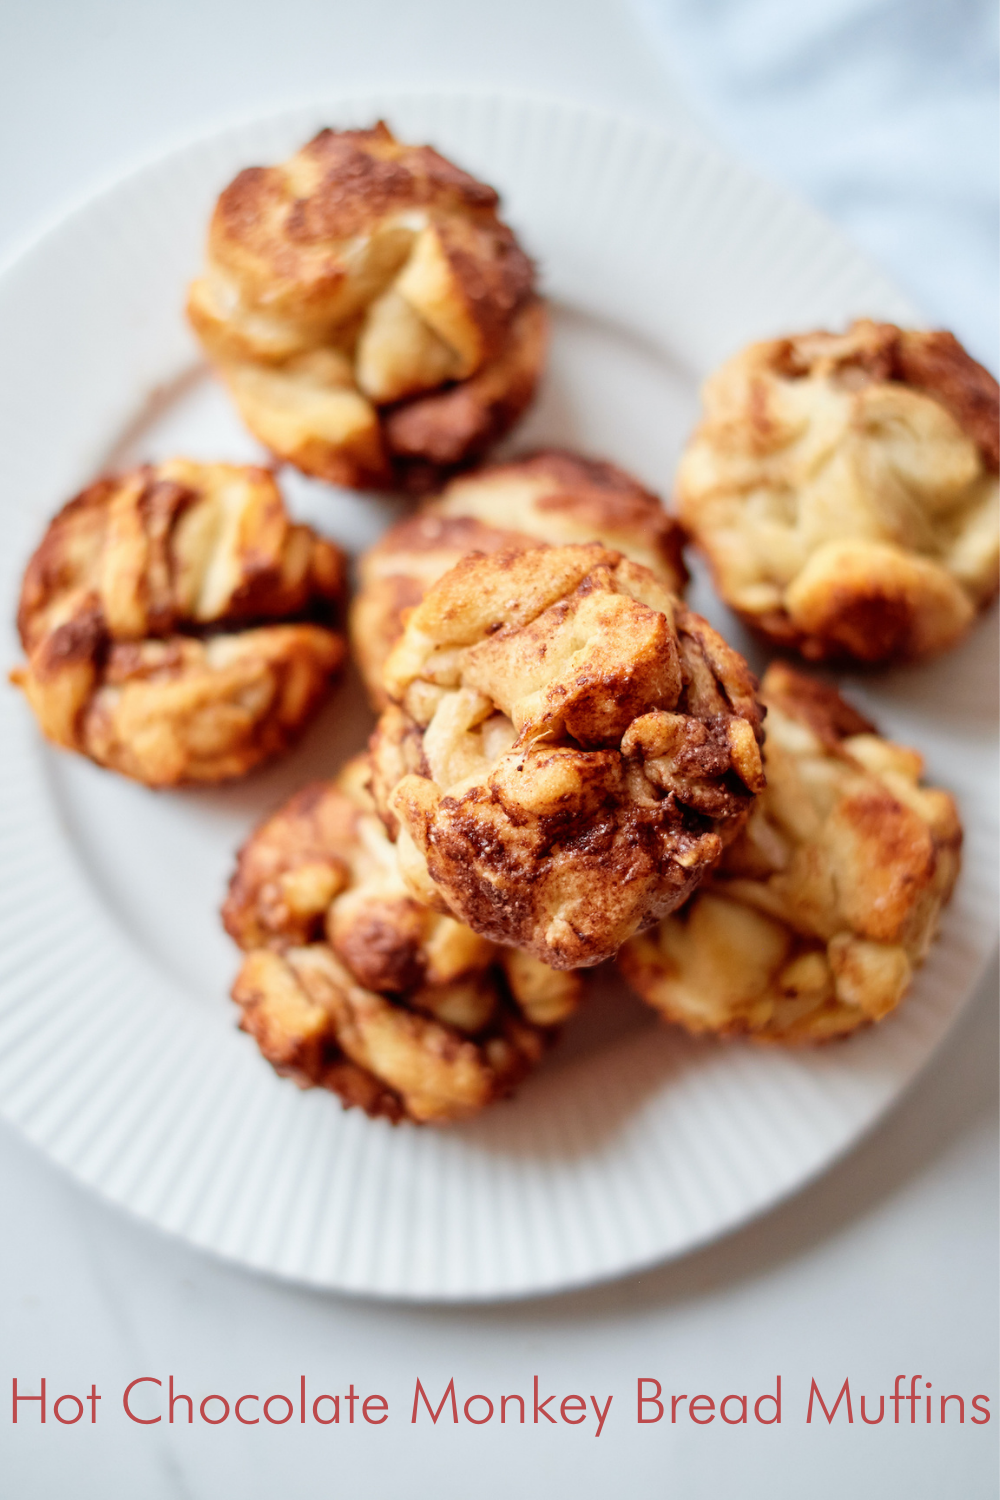 Wow your brunch crowd with this irresistibly sweet and rich take on monkey bread! These easy Monkey Bread Muffins layer dough pieces coated in rich hot chocolate. Get ready to pull apart these Hot Chocolate Monkey Bread Muffins!